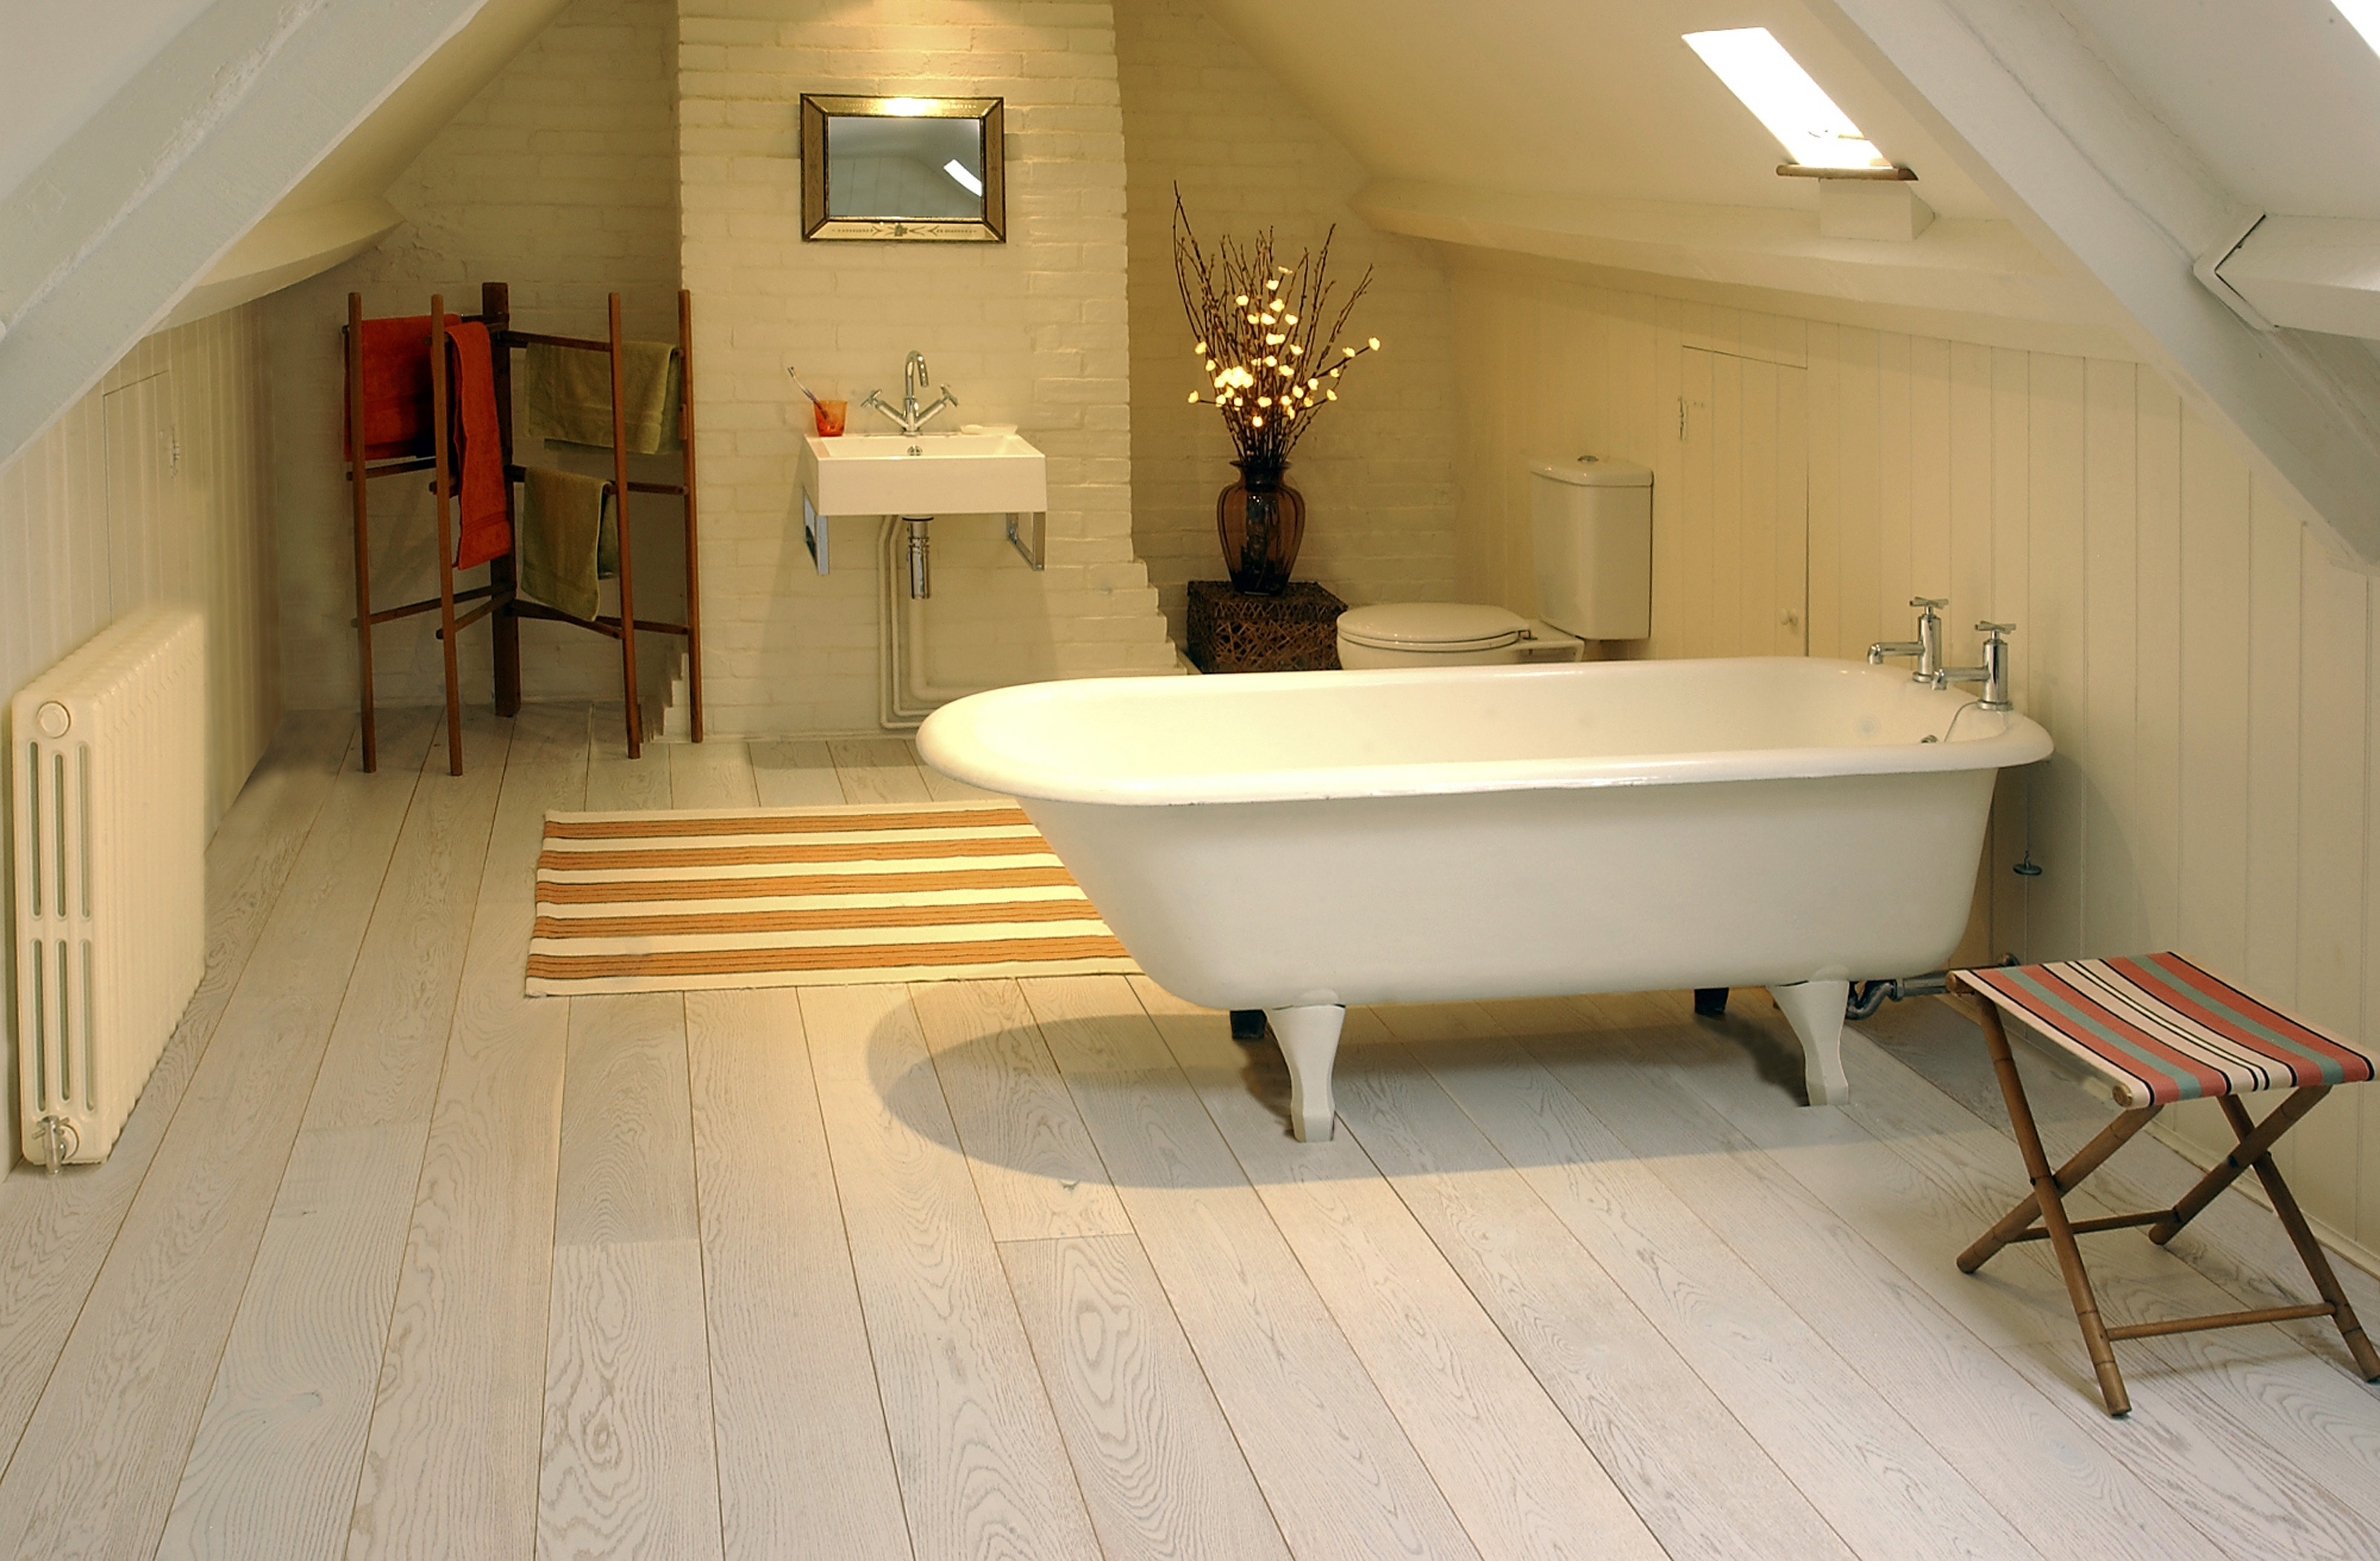 Engineered Wood Flooring For Bathroom